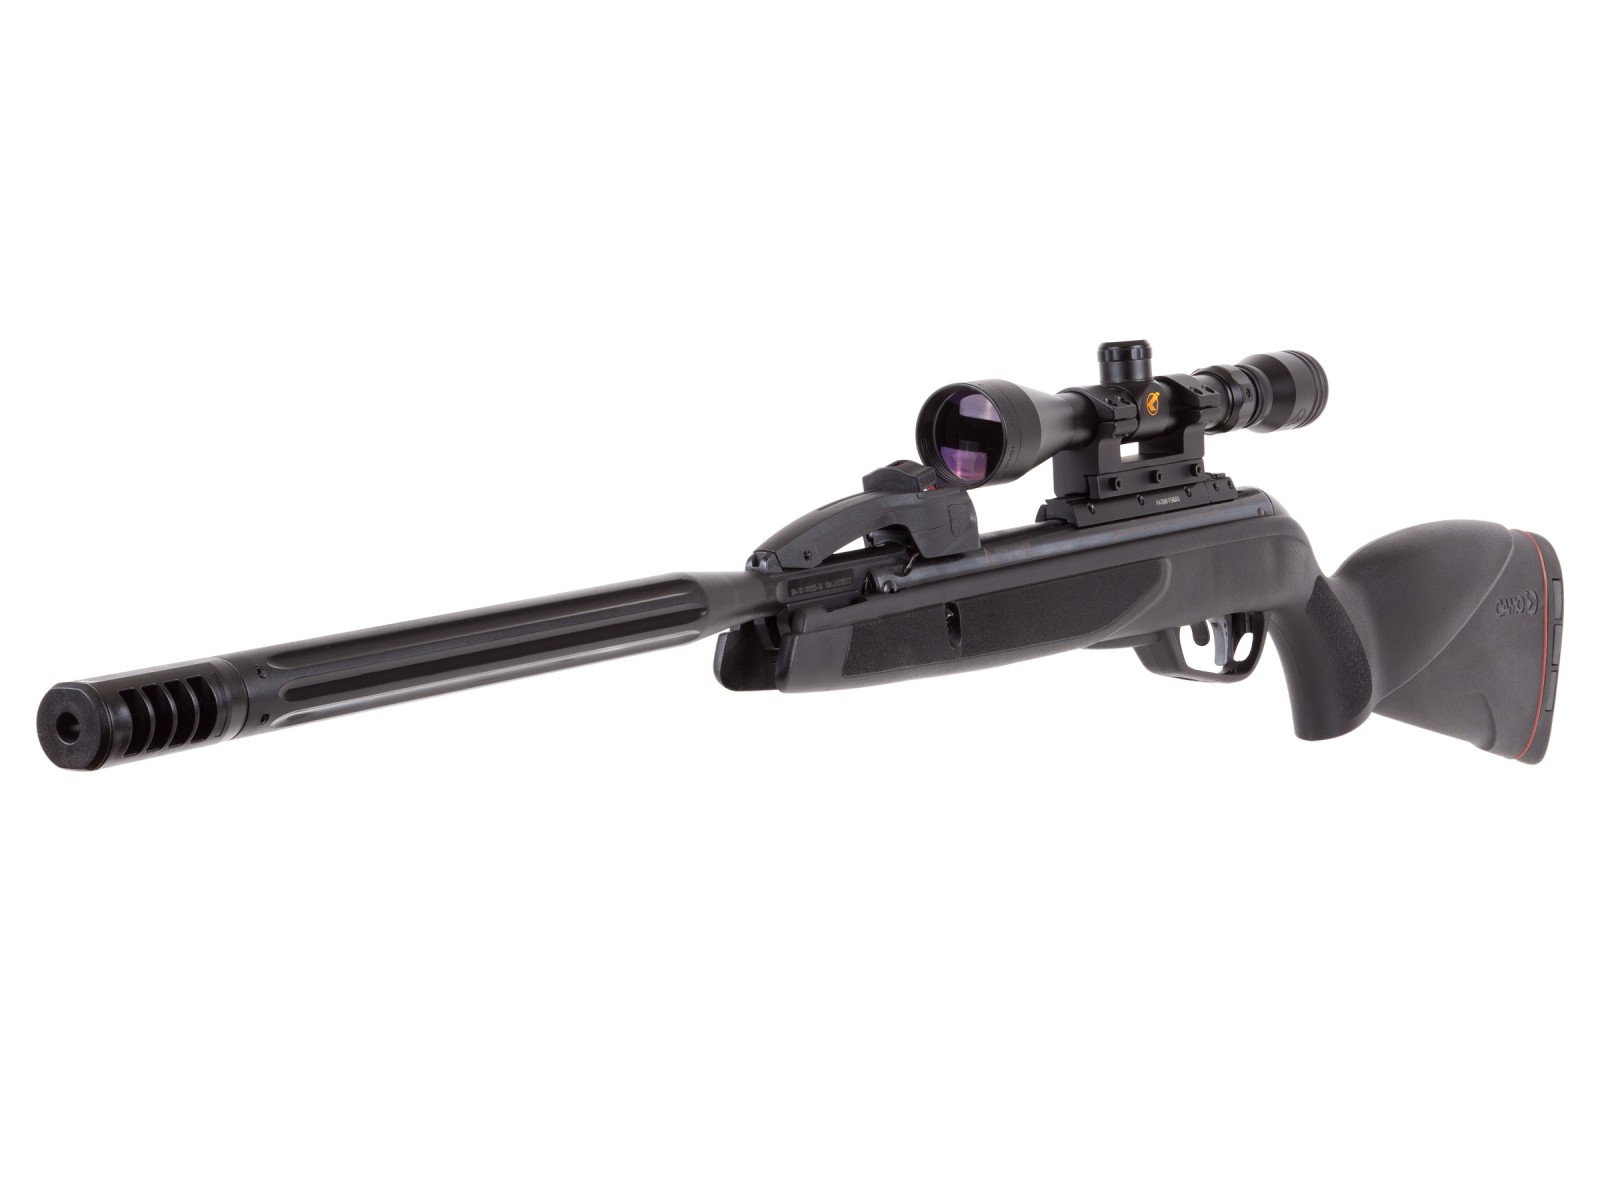 Questions & Answers: Gamo Swarm Maxxim Multi-shot Air Rifle